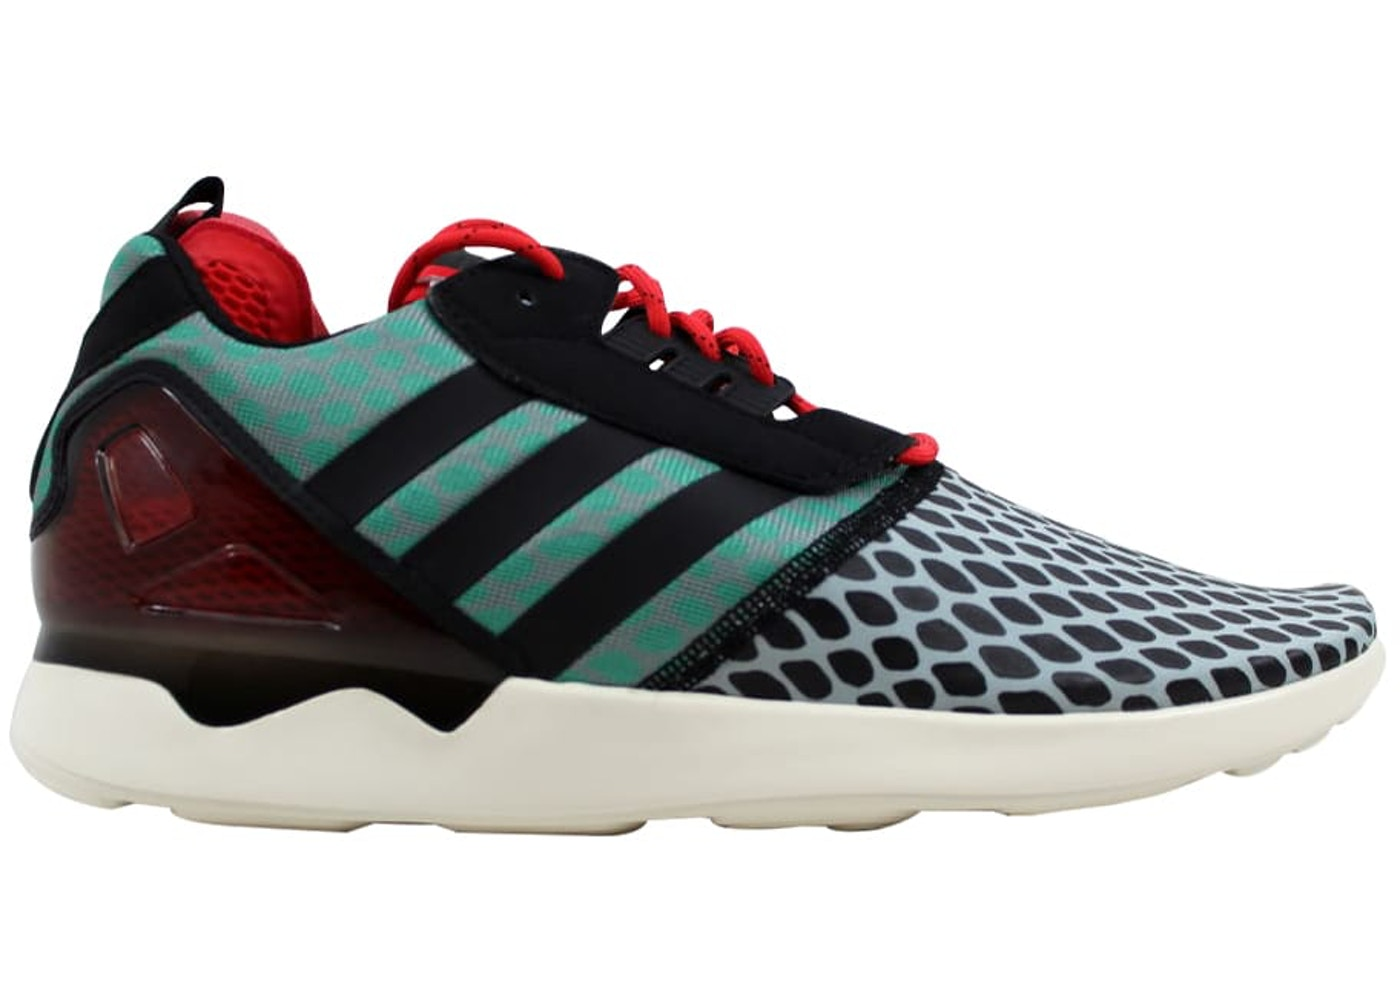 adidas ZX 8000 Boost Multi Color - B24953 33329711a